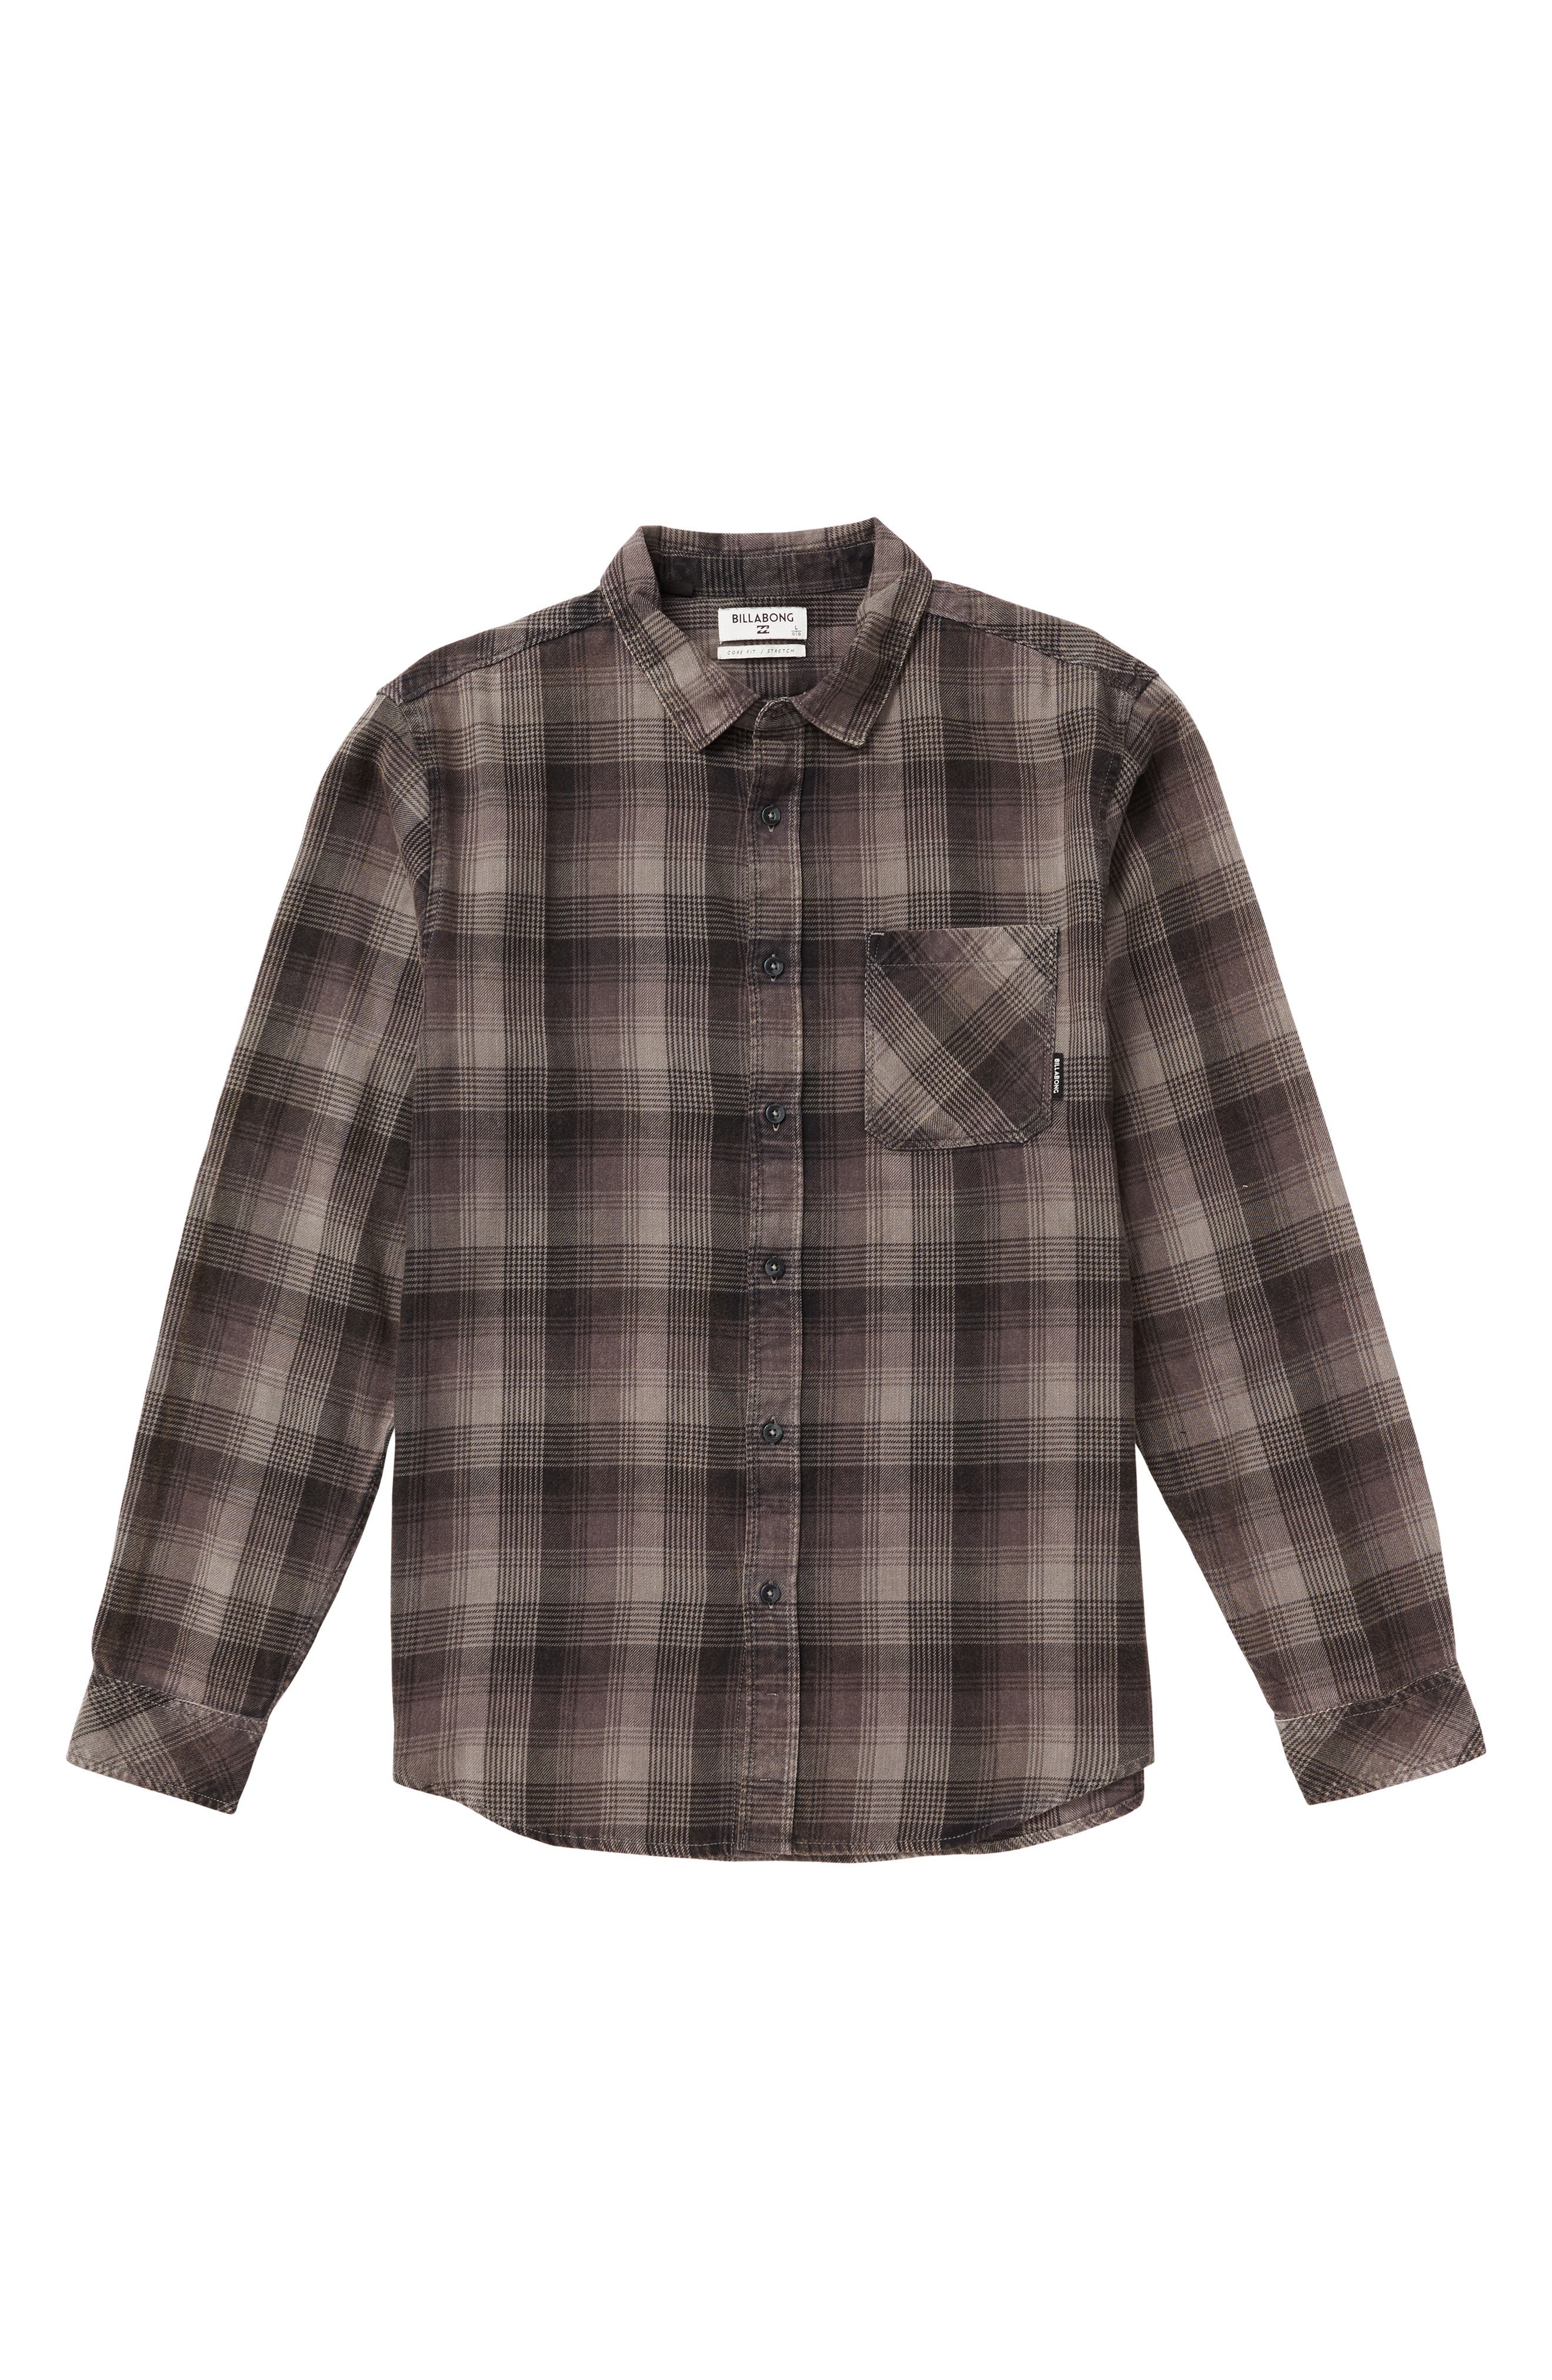 BILLABONG Freemont Flannel Shirt, Main, color, CHARCOAL